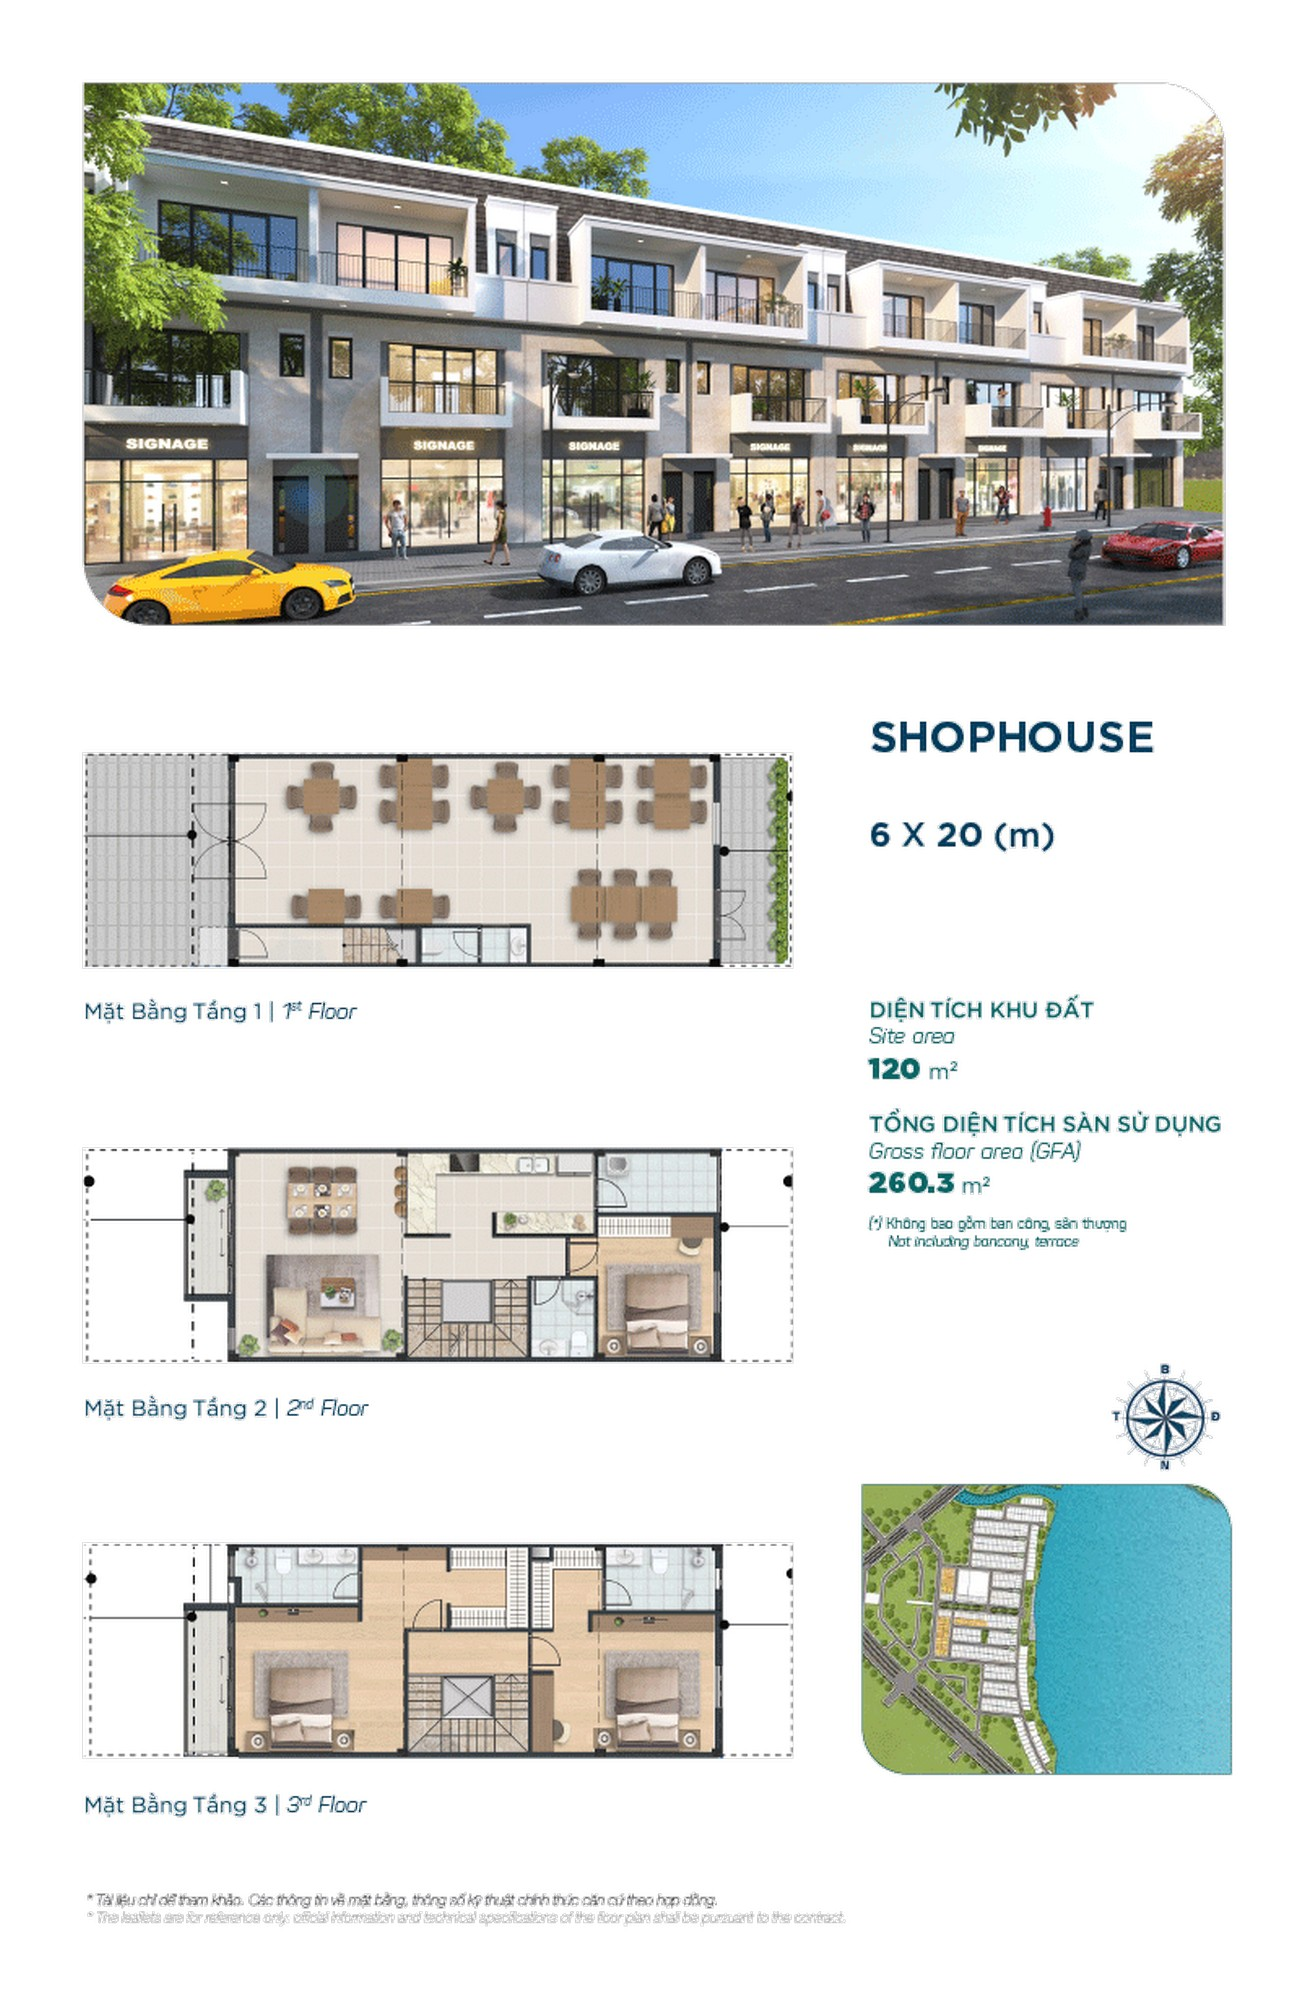 Shophouse The Elite 6x20m - Dự án Aqua City The Elite